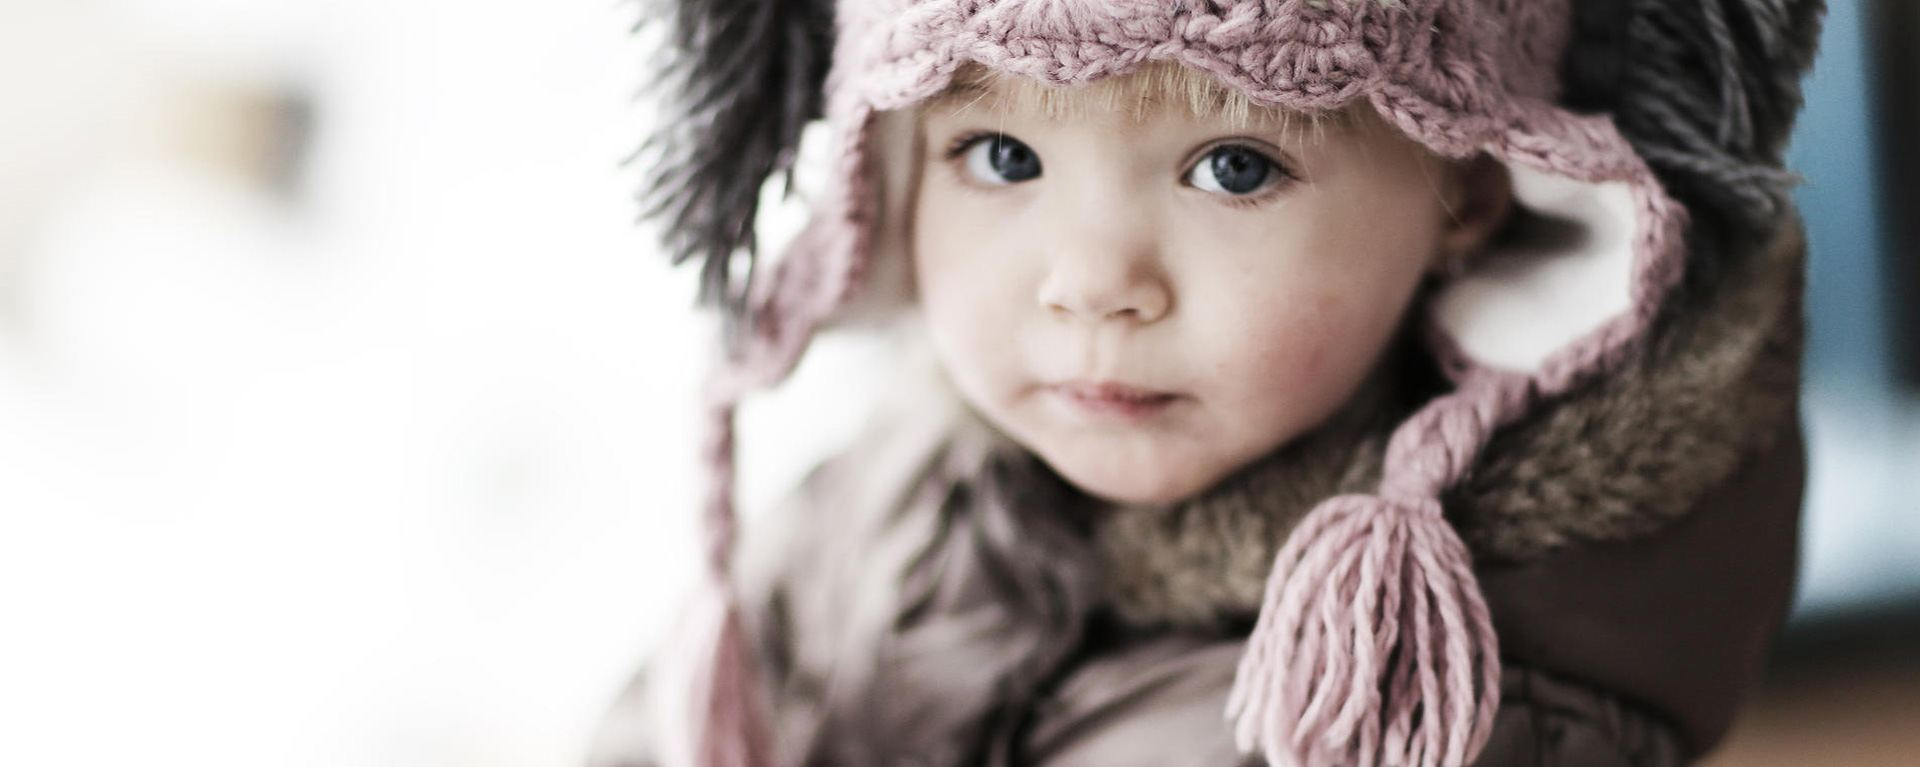 Photograph of a child in a knitted hat